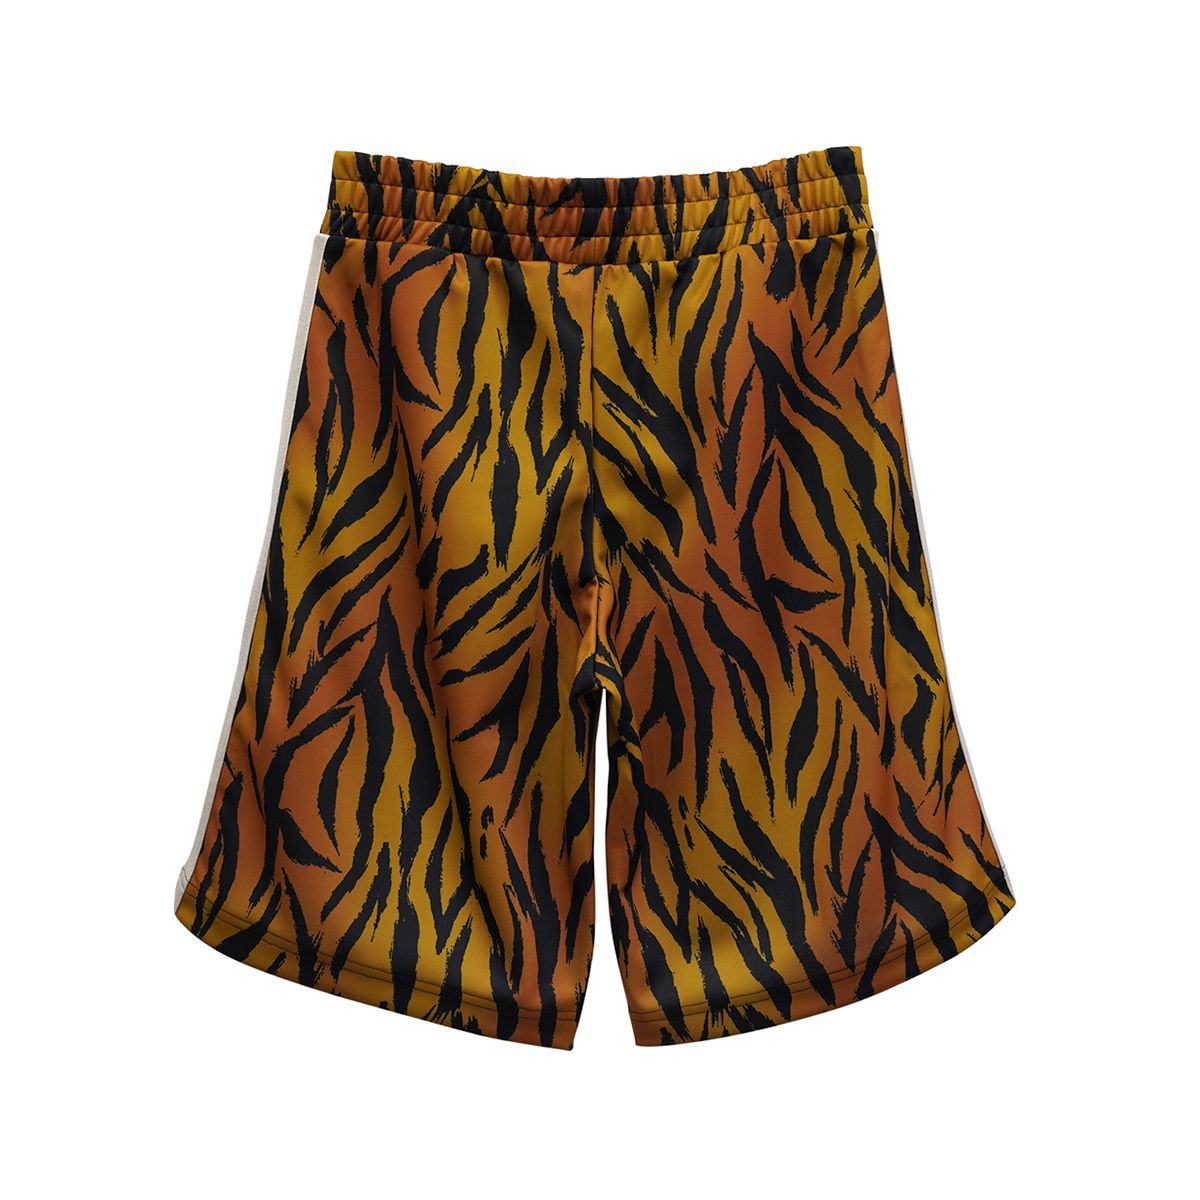 Palm Angels TIGER TRACK SHORTS / 6001 : BROWN WHITE